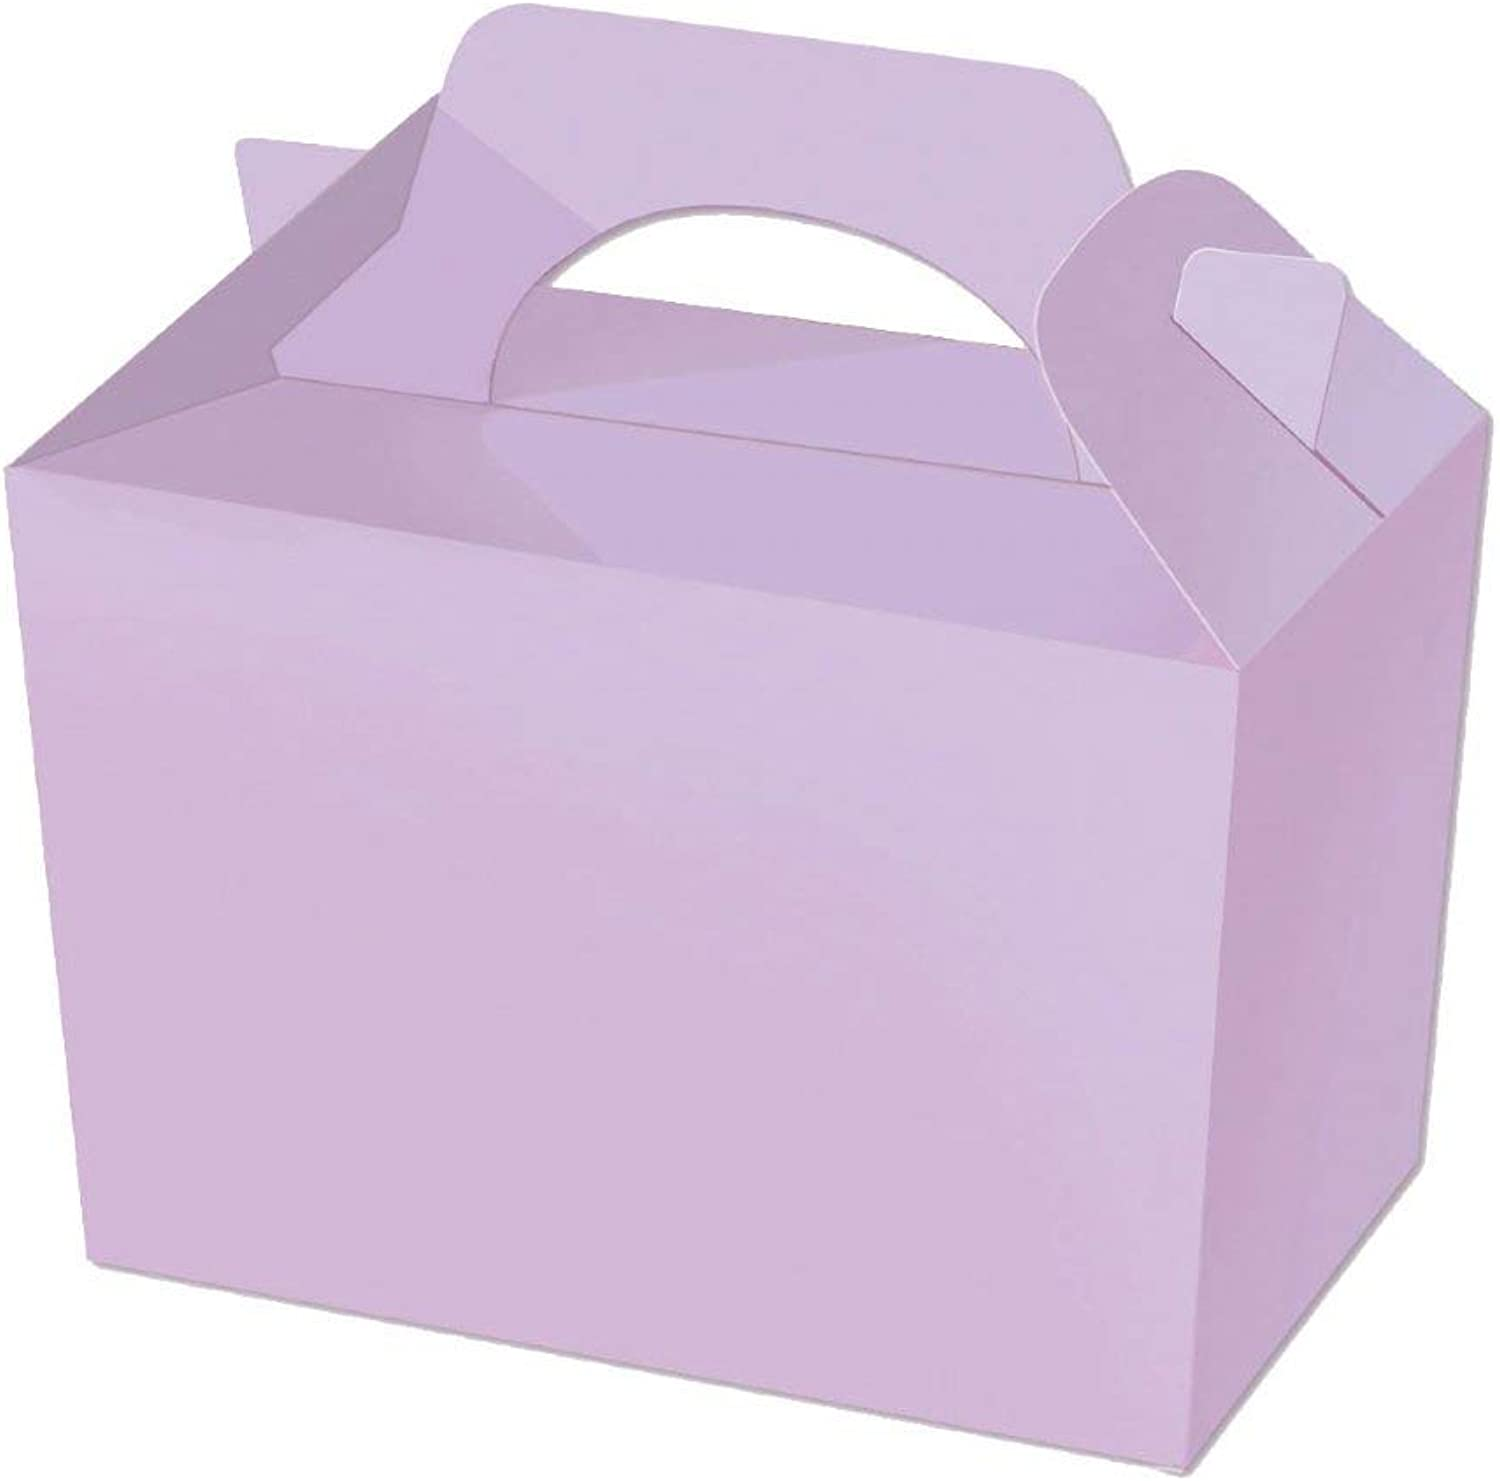 100 purplec Party Boxes Solid Colour Plain Cardboard Lunch Food Loot Treat Box